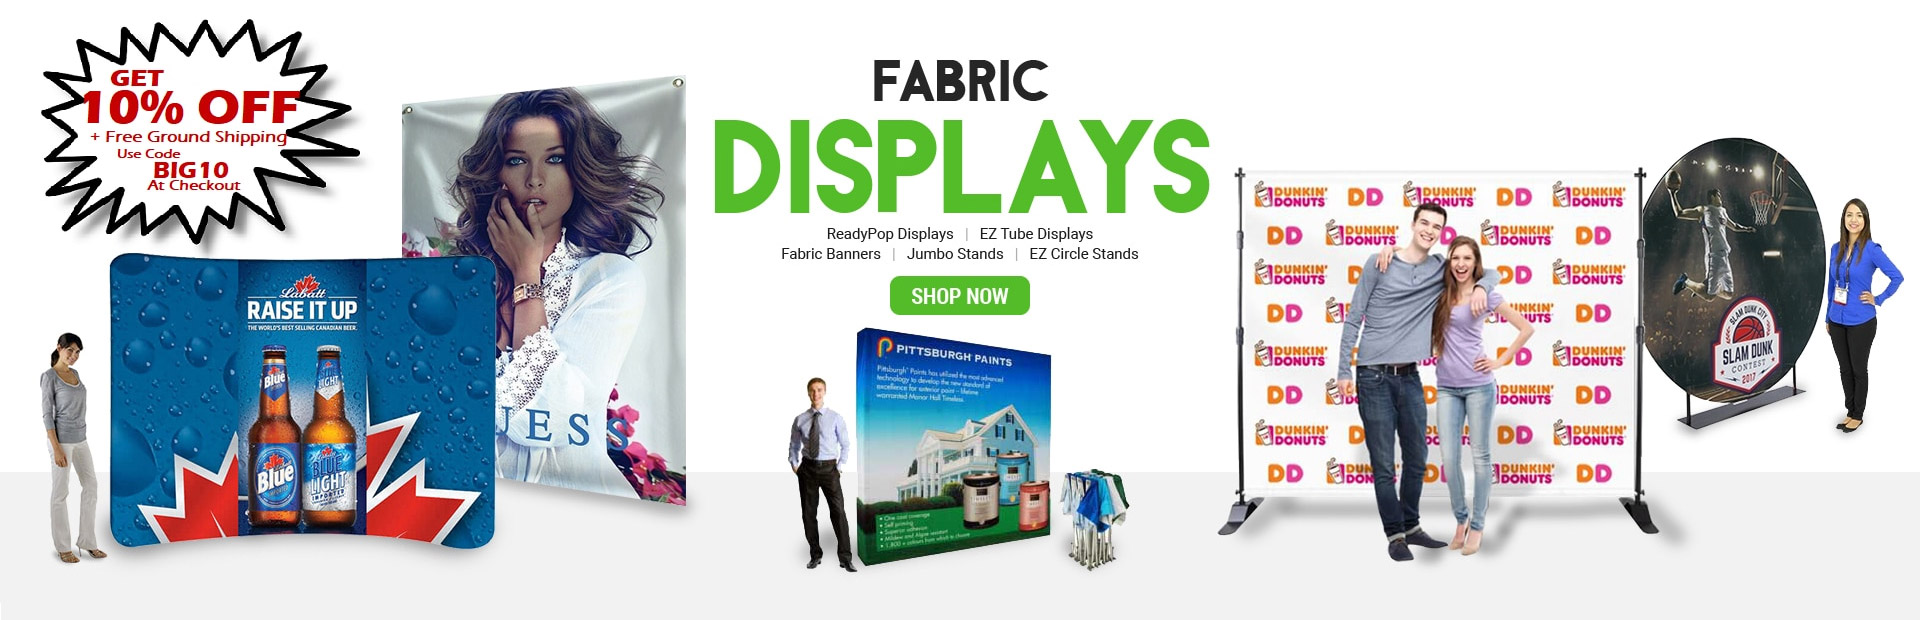 pop-up readypop tension fabric backdrop display step and repeat marketing advertising branding events